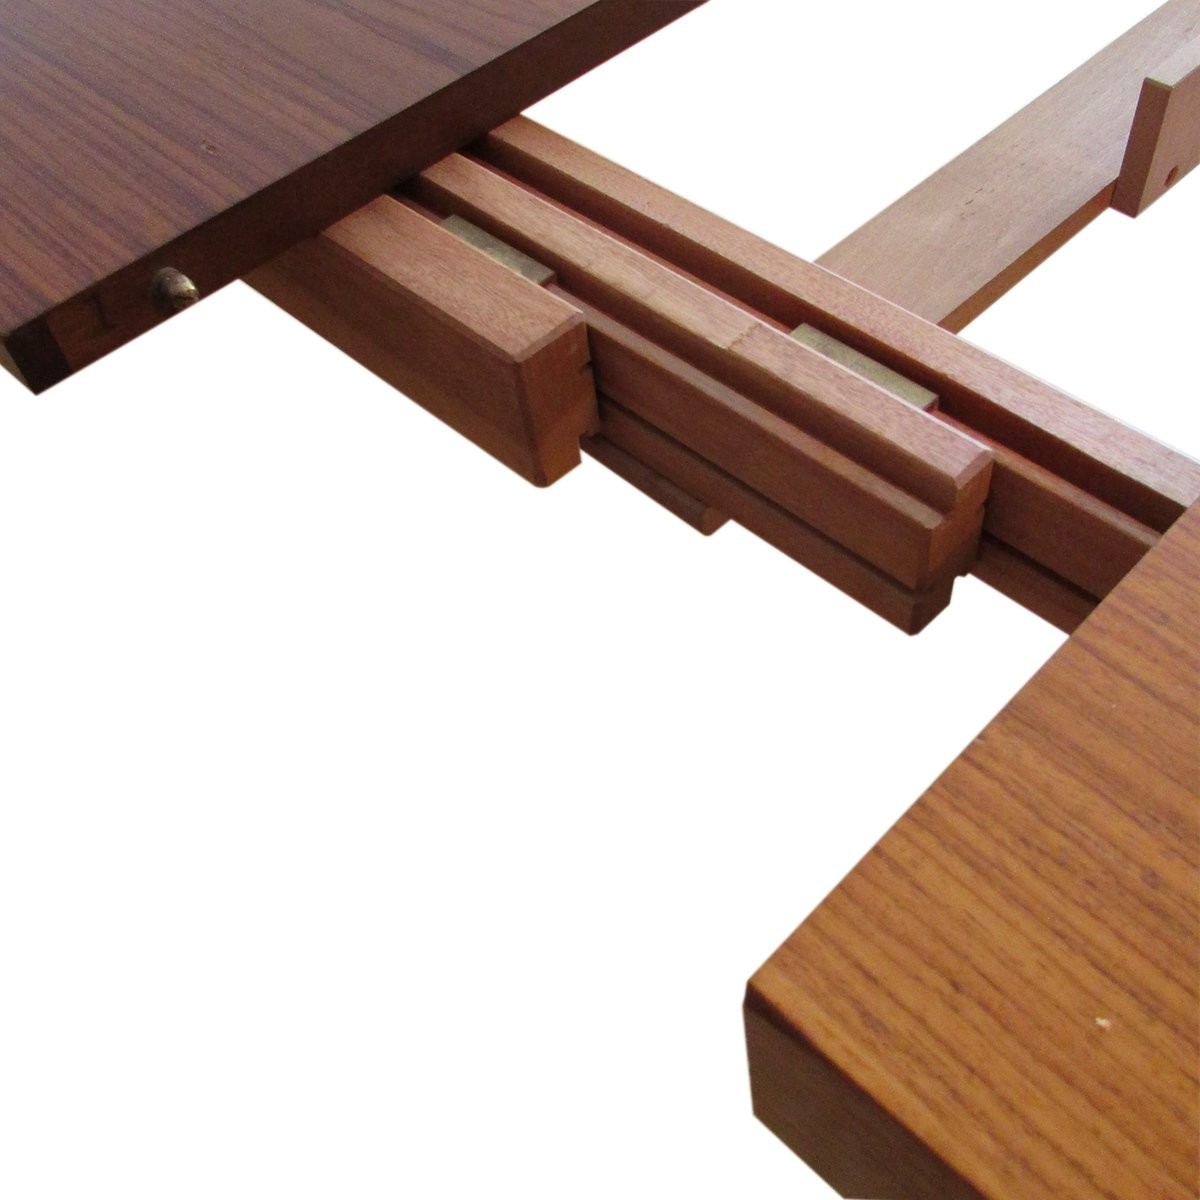 Extendable Teak Dining Table by Dieter W228ckerlin for  : extendable teak dining table by dieter waeckerlin for idealheim 8 from www.pamono.com size 1200 x 1200 jpeg 356kB